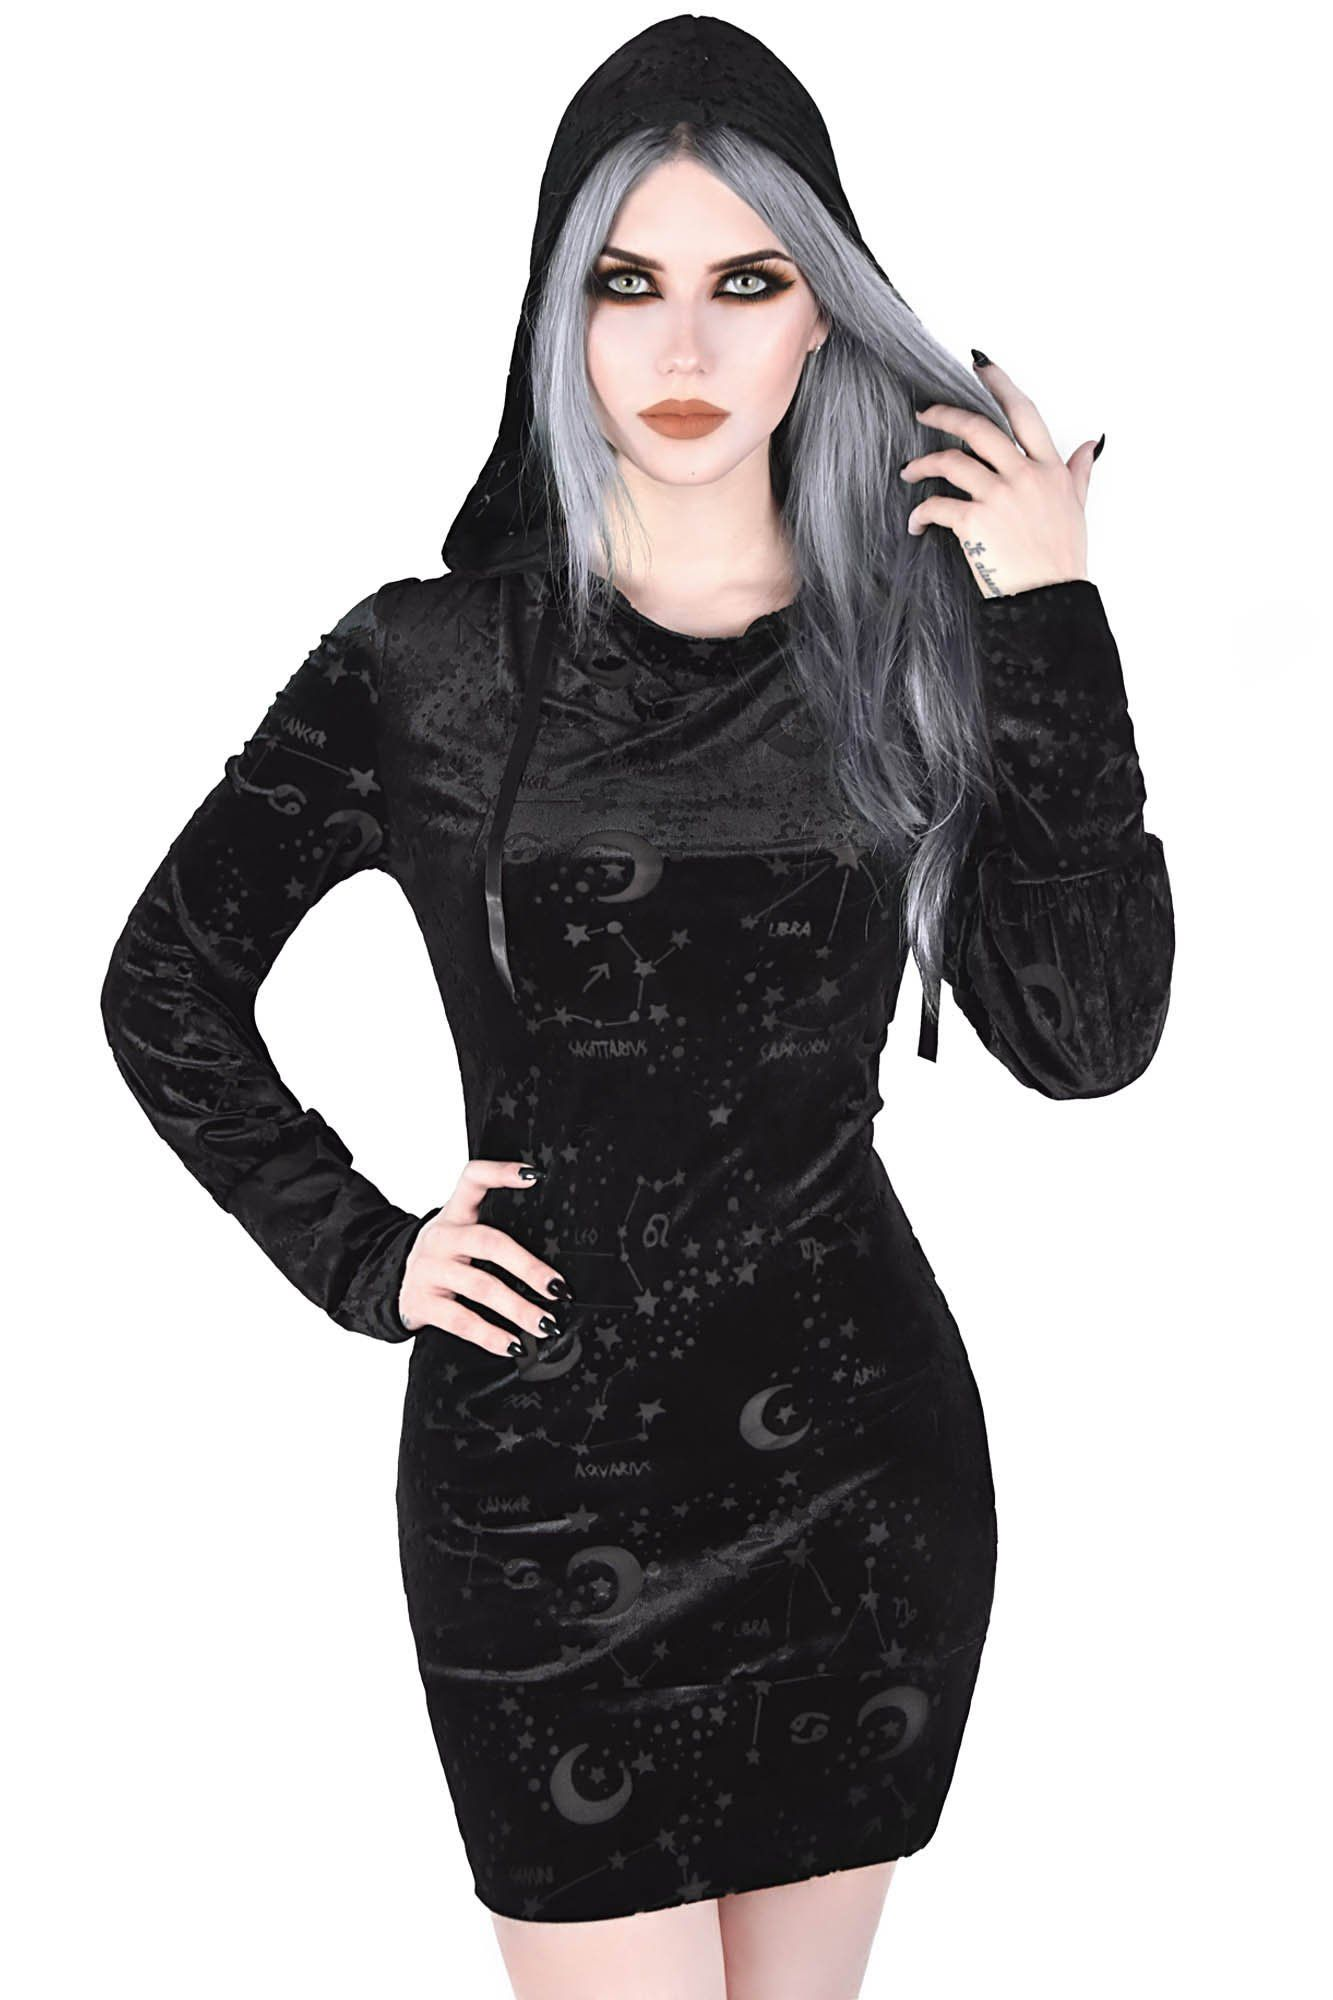 Gothic Kleding.Galatea Hooded Tunic Gothic